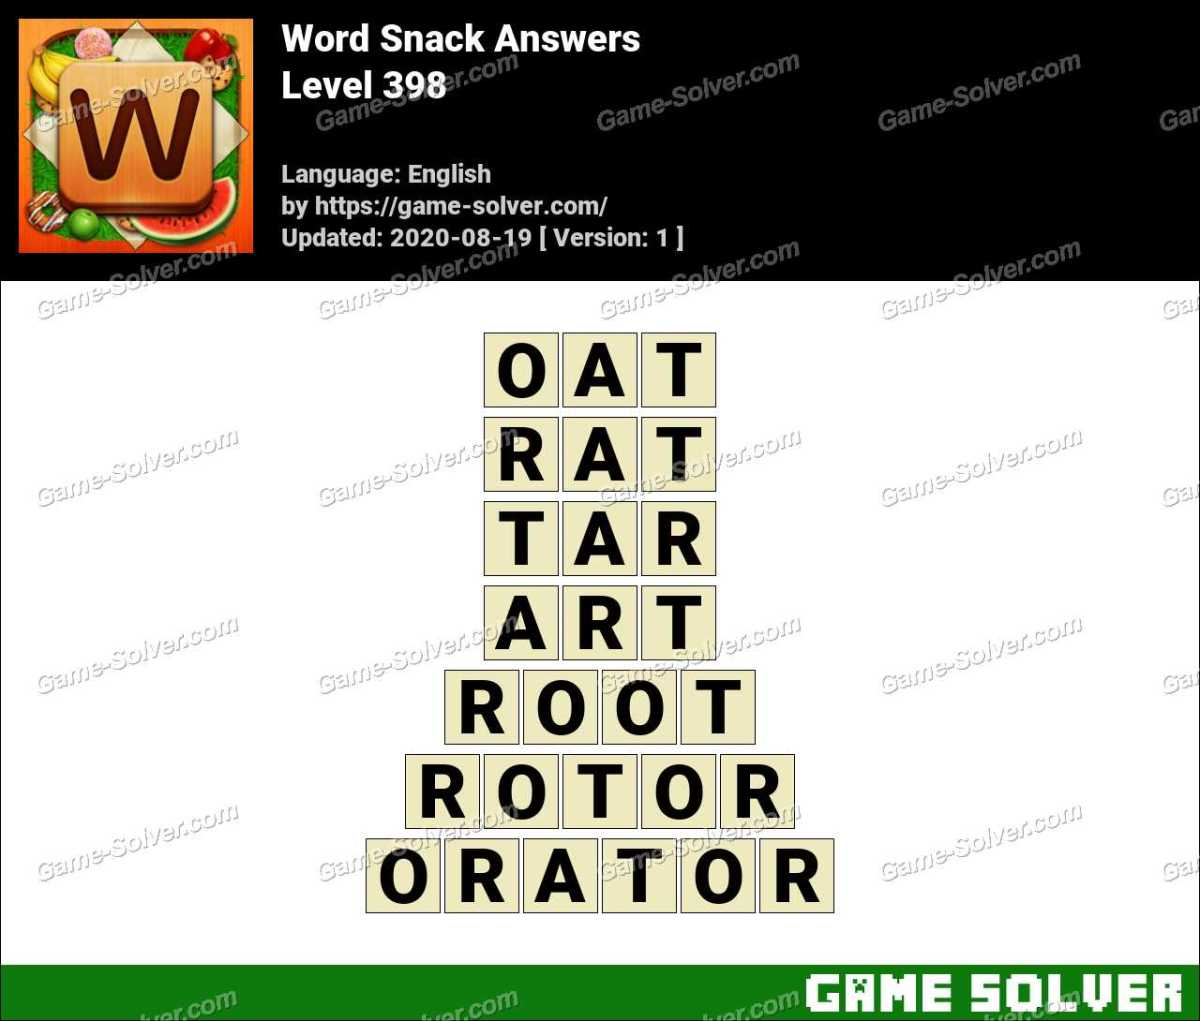 Word Snack Level 398 Answers